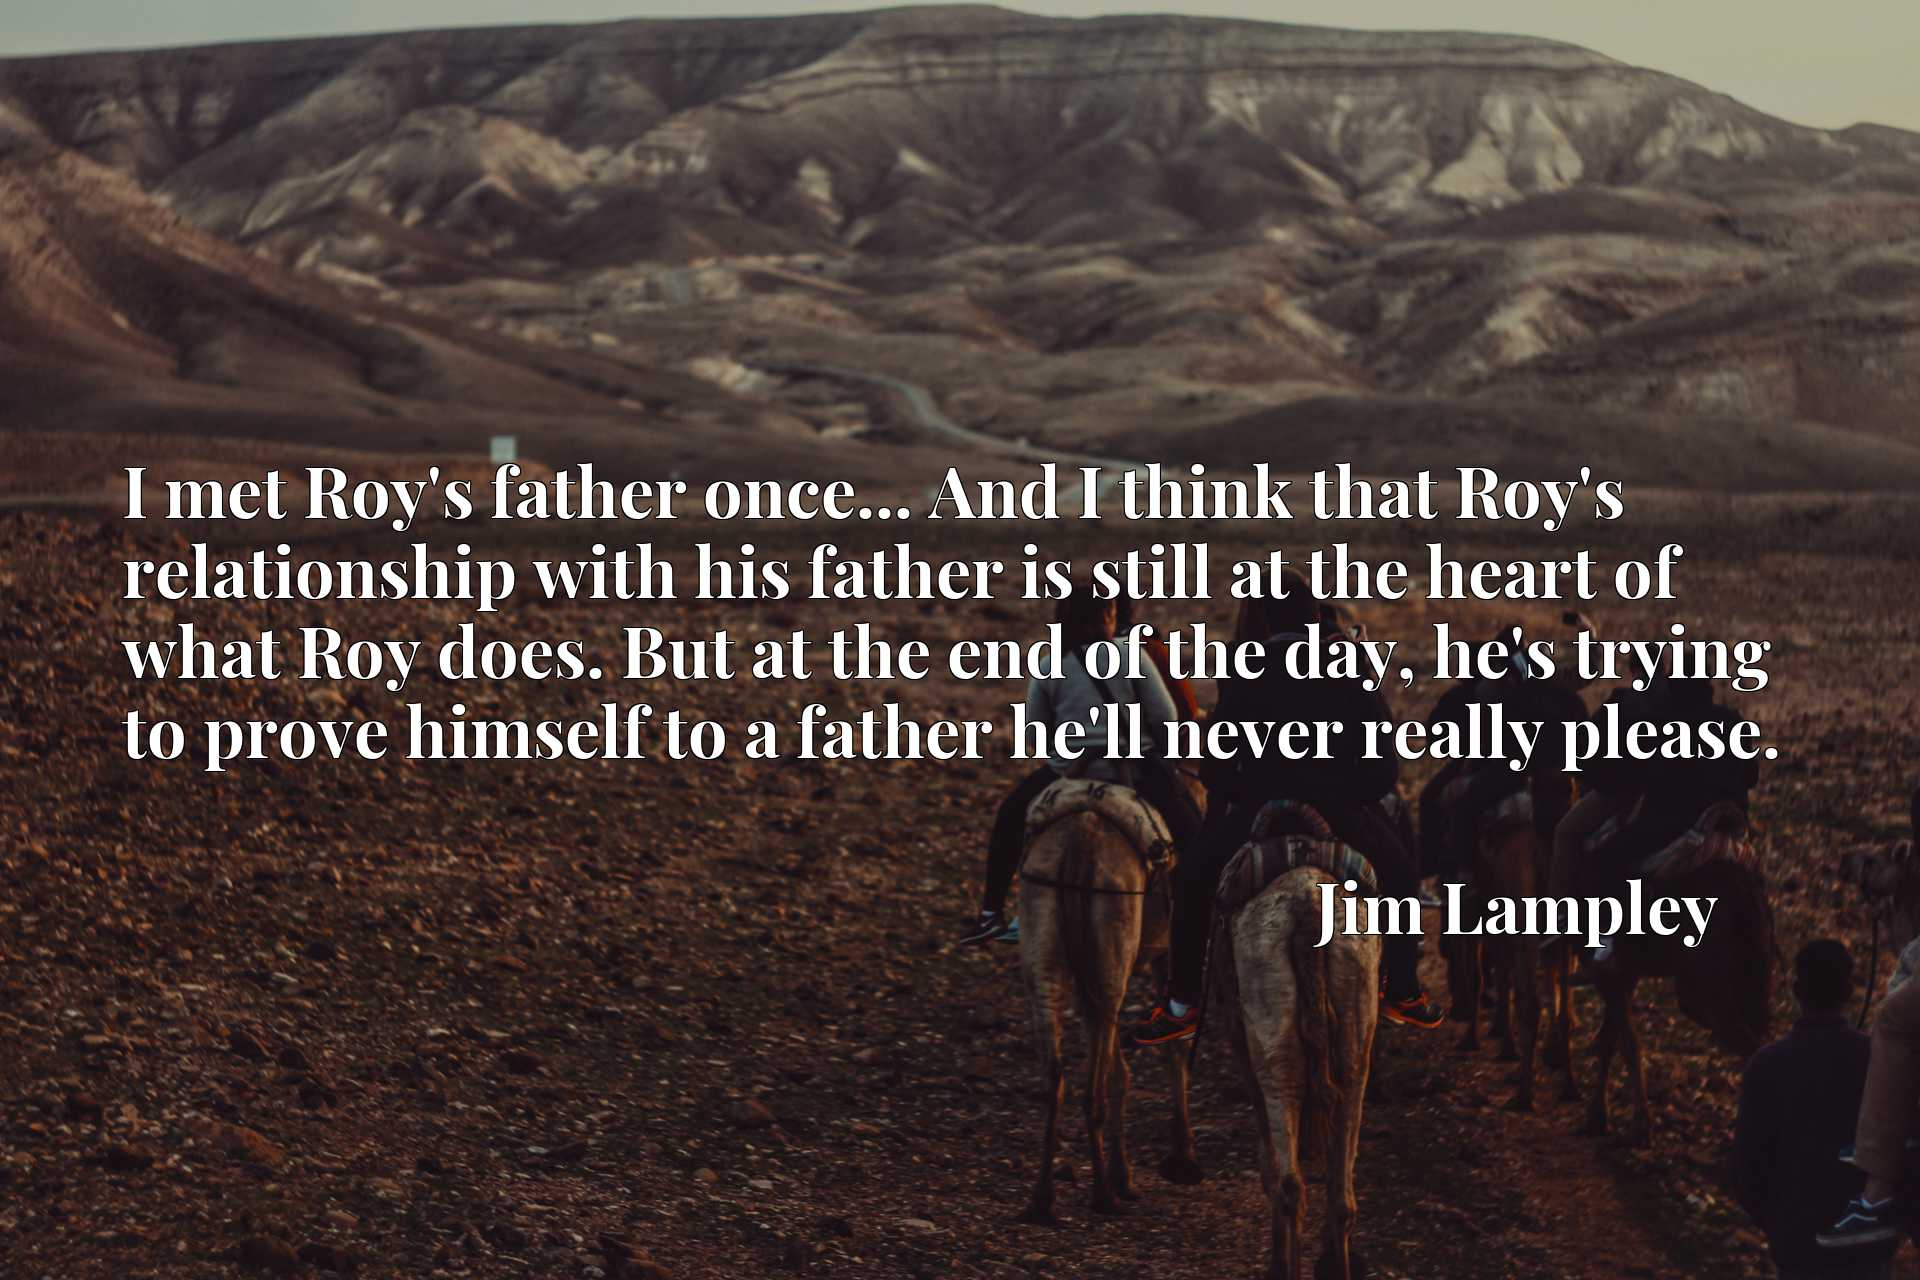 I met Roy's father once... And I think that Roy's relationship with his father is still at the heart of what Roy does. But at the end of the day, he's trying to prove himself to a father he'll never really please.